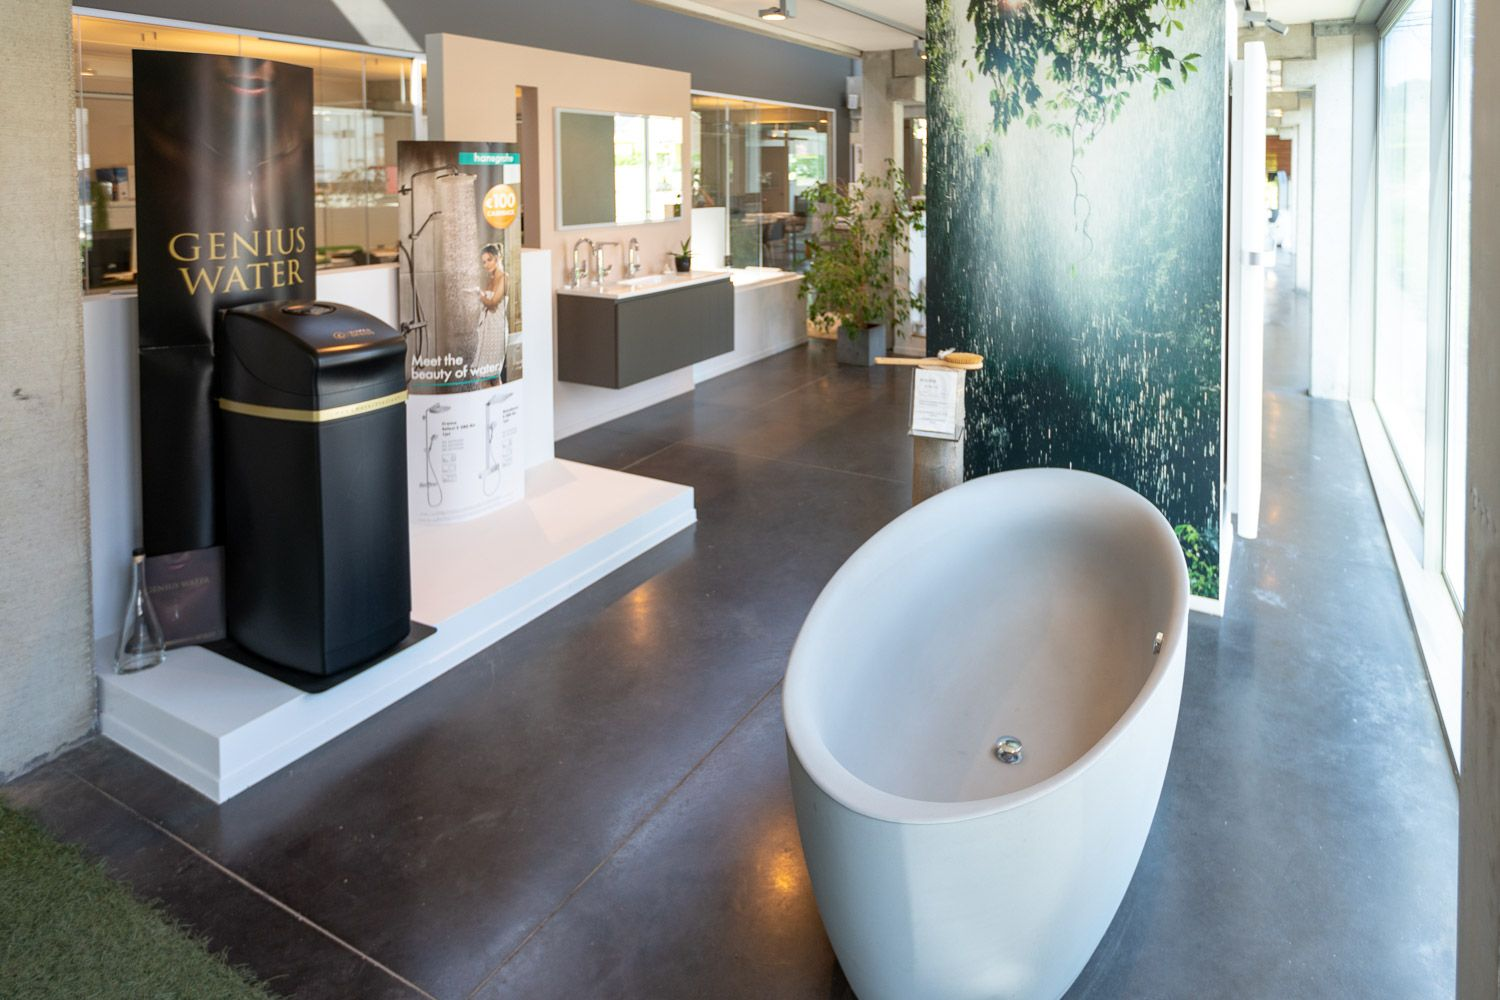 Cnockaert showroom sanitair en zuiver drinkwatersystemen